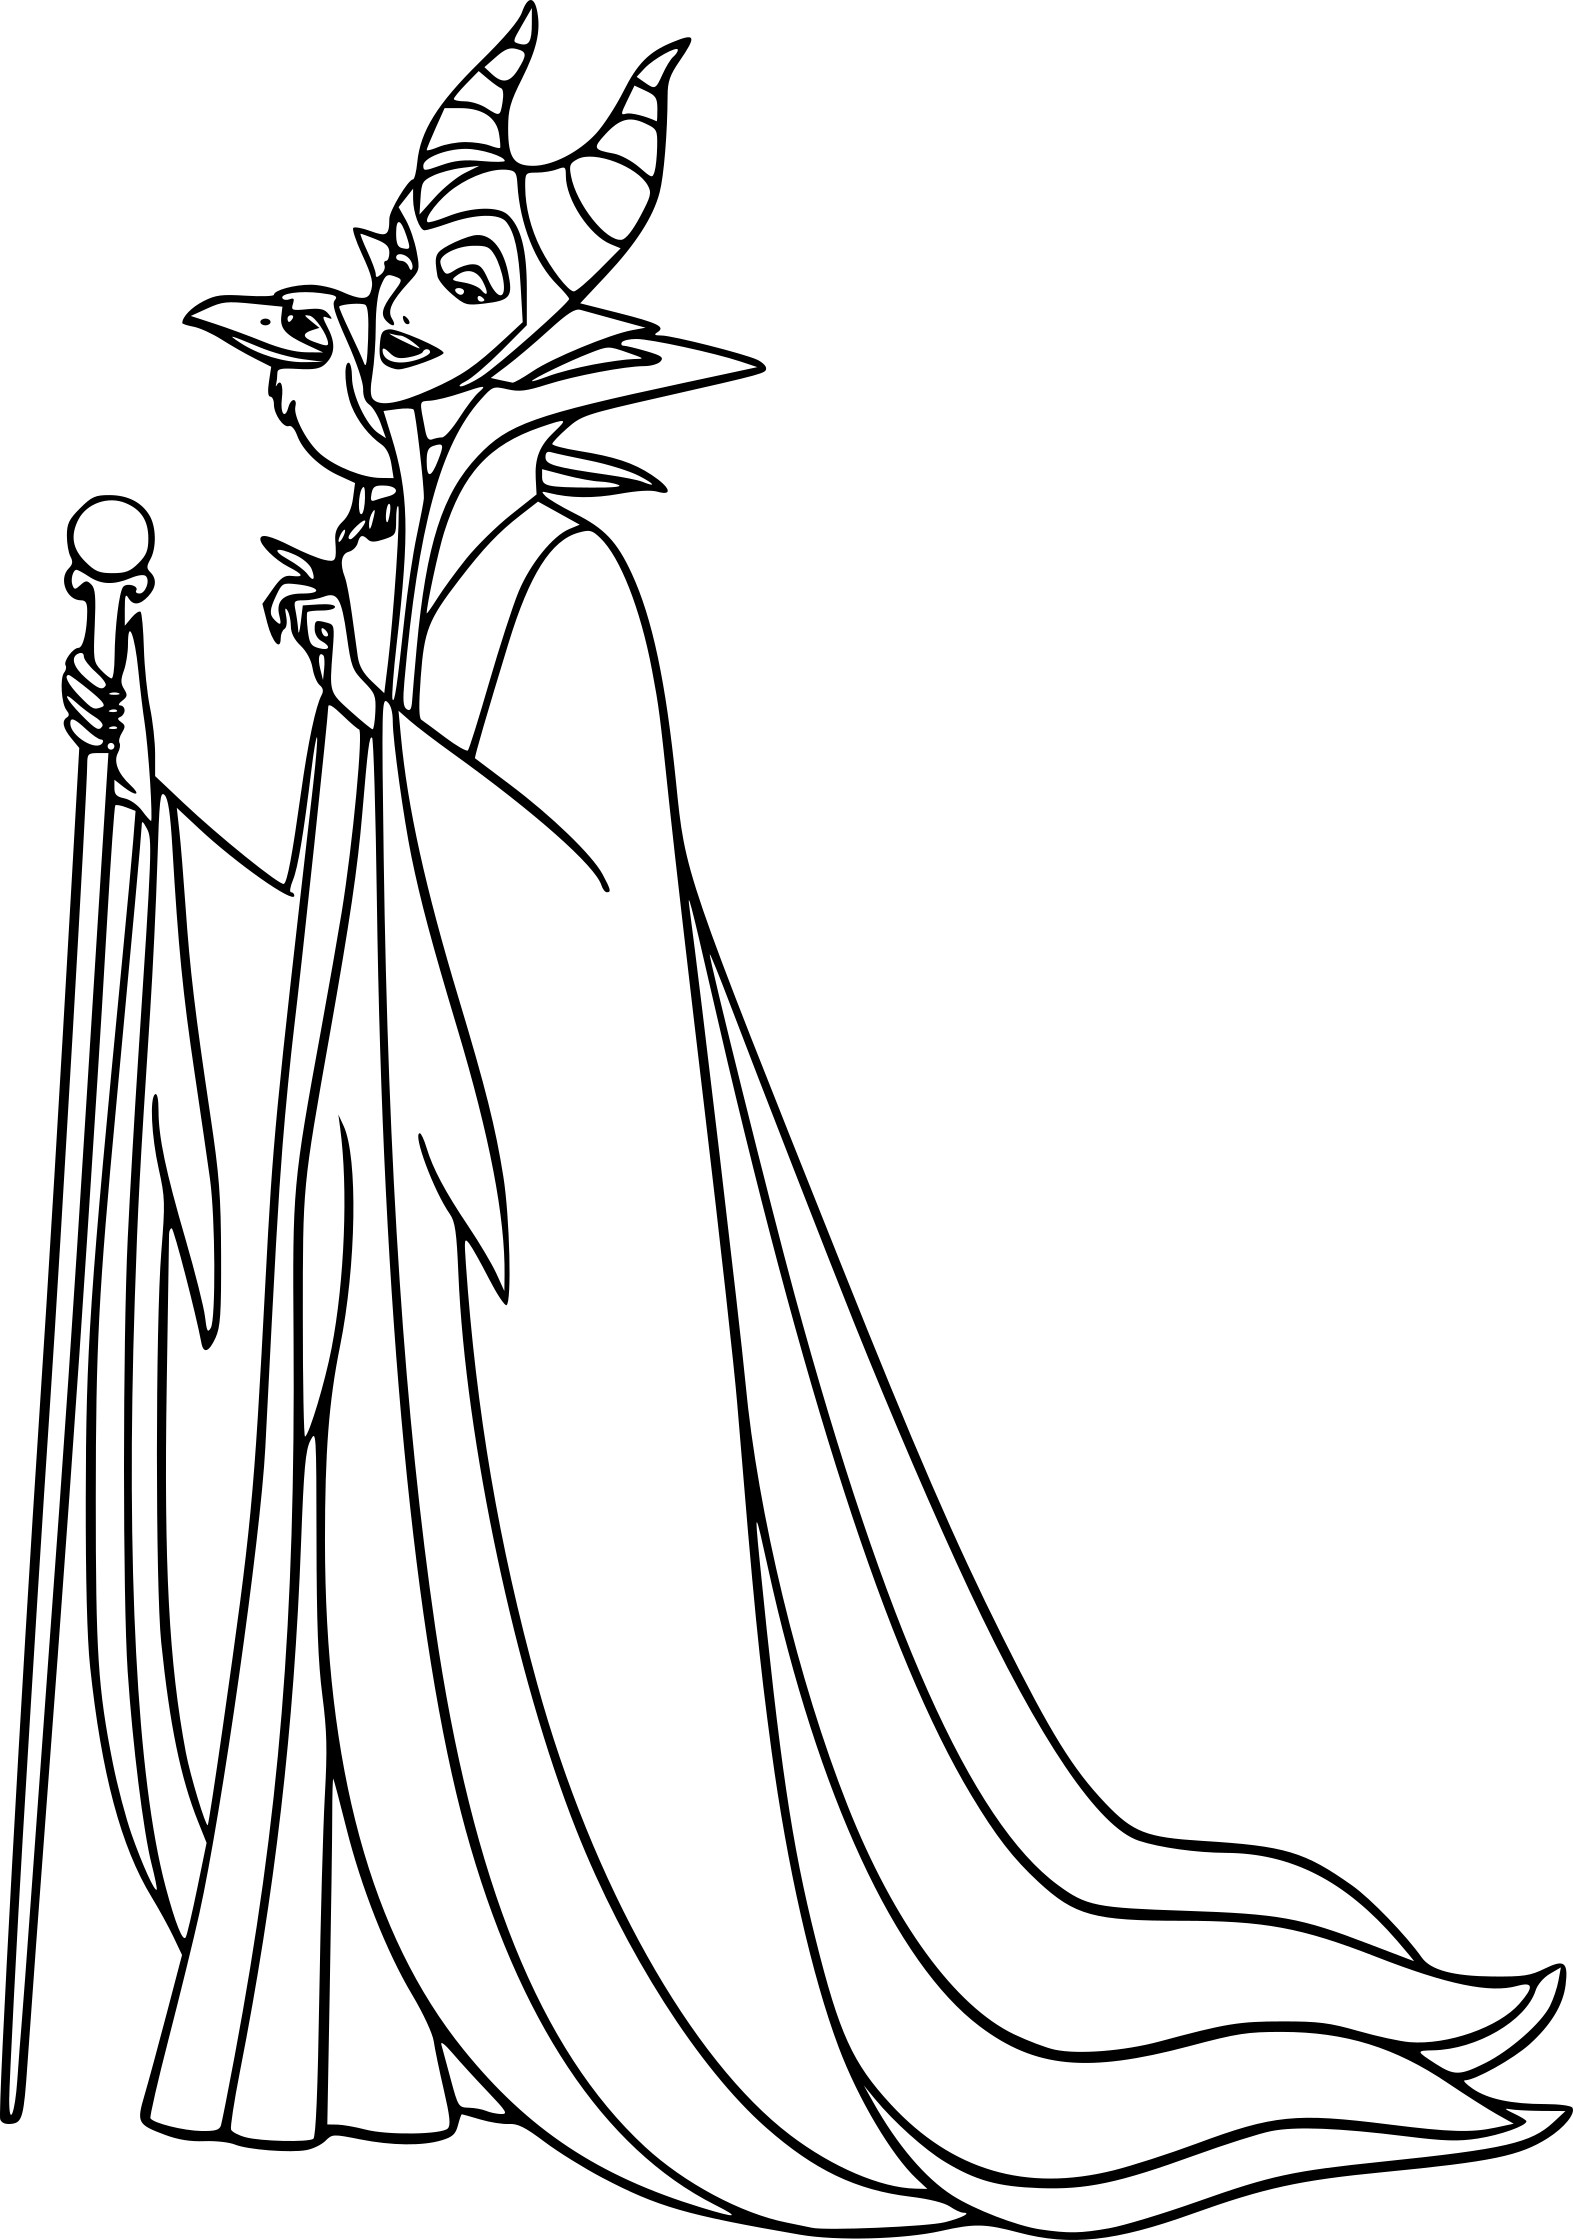 The gallery for maleficent dragon coloring page for Maleficent coloring pages